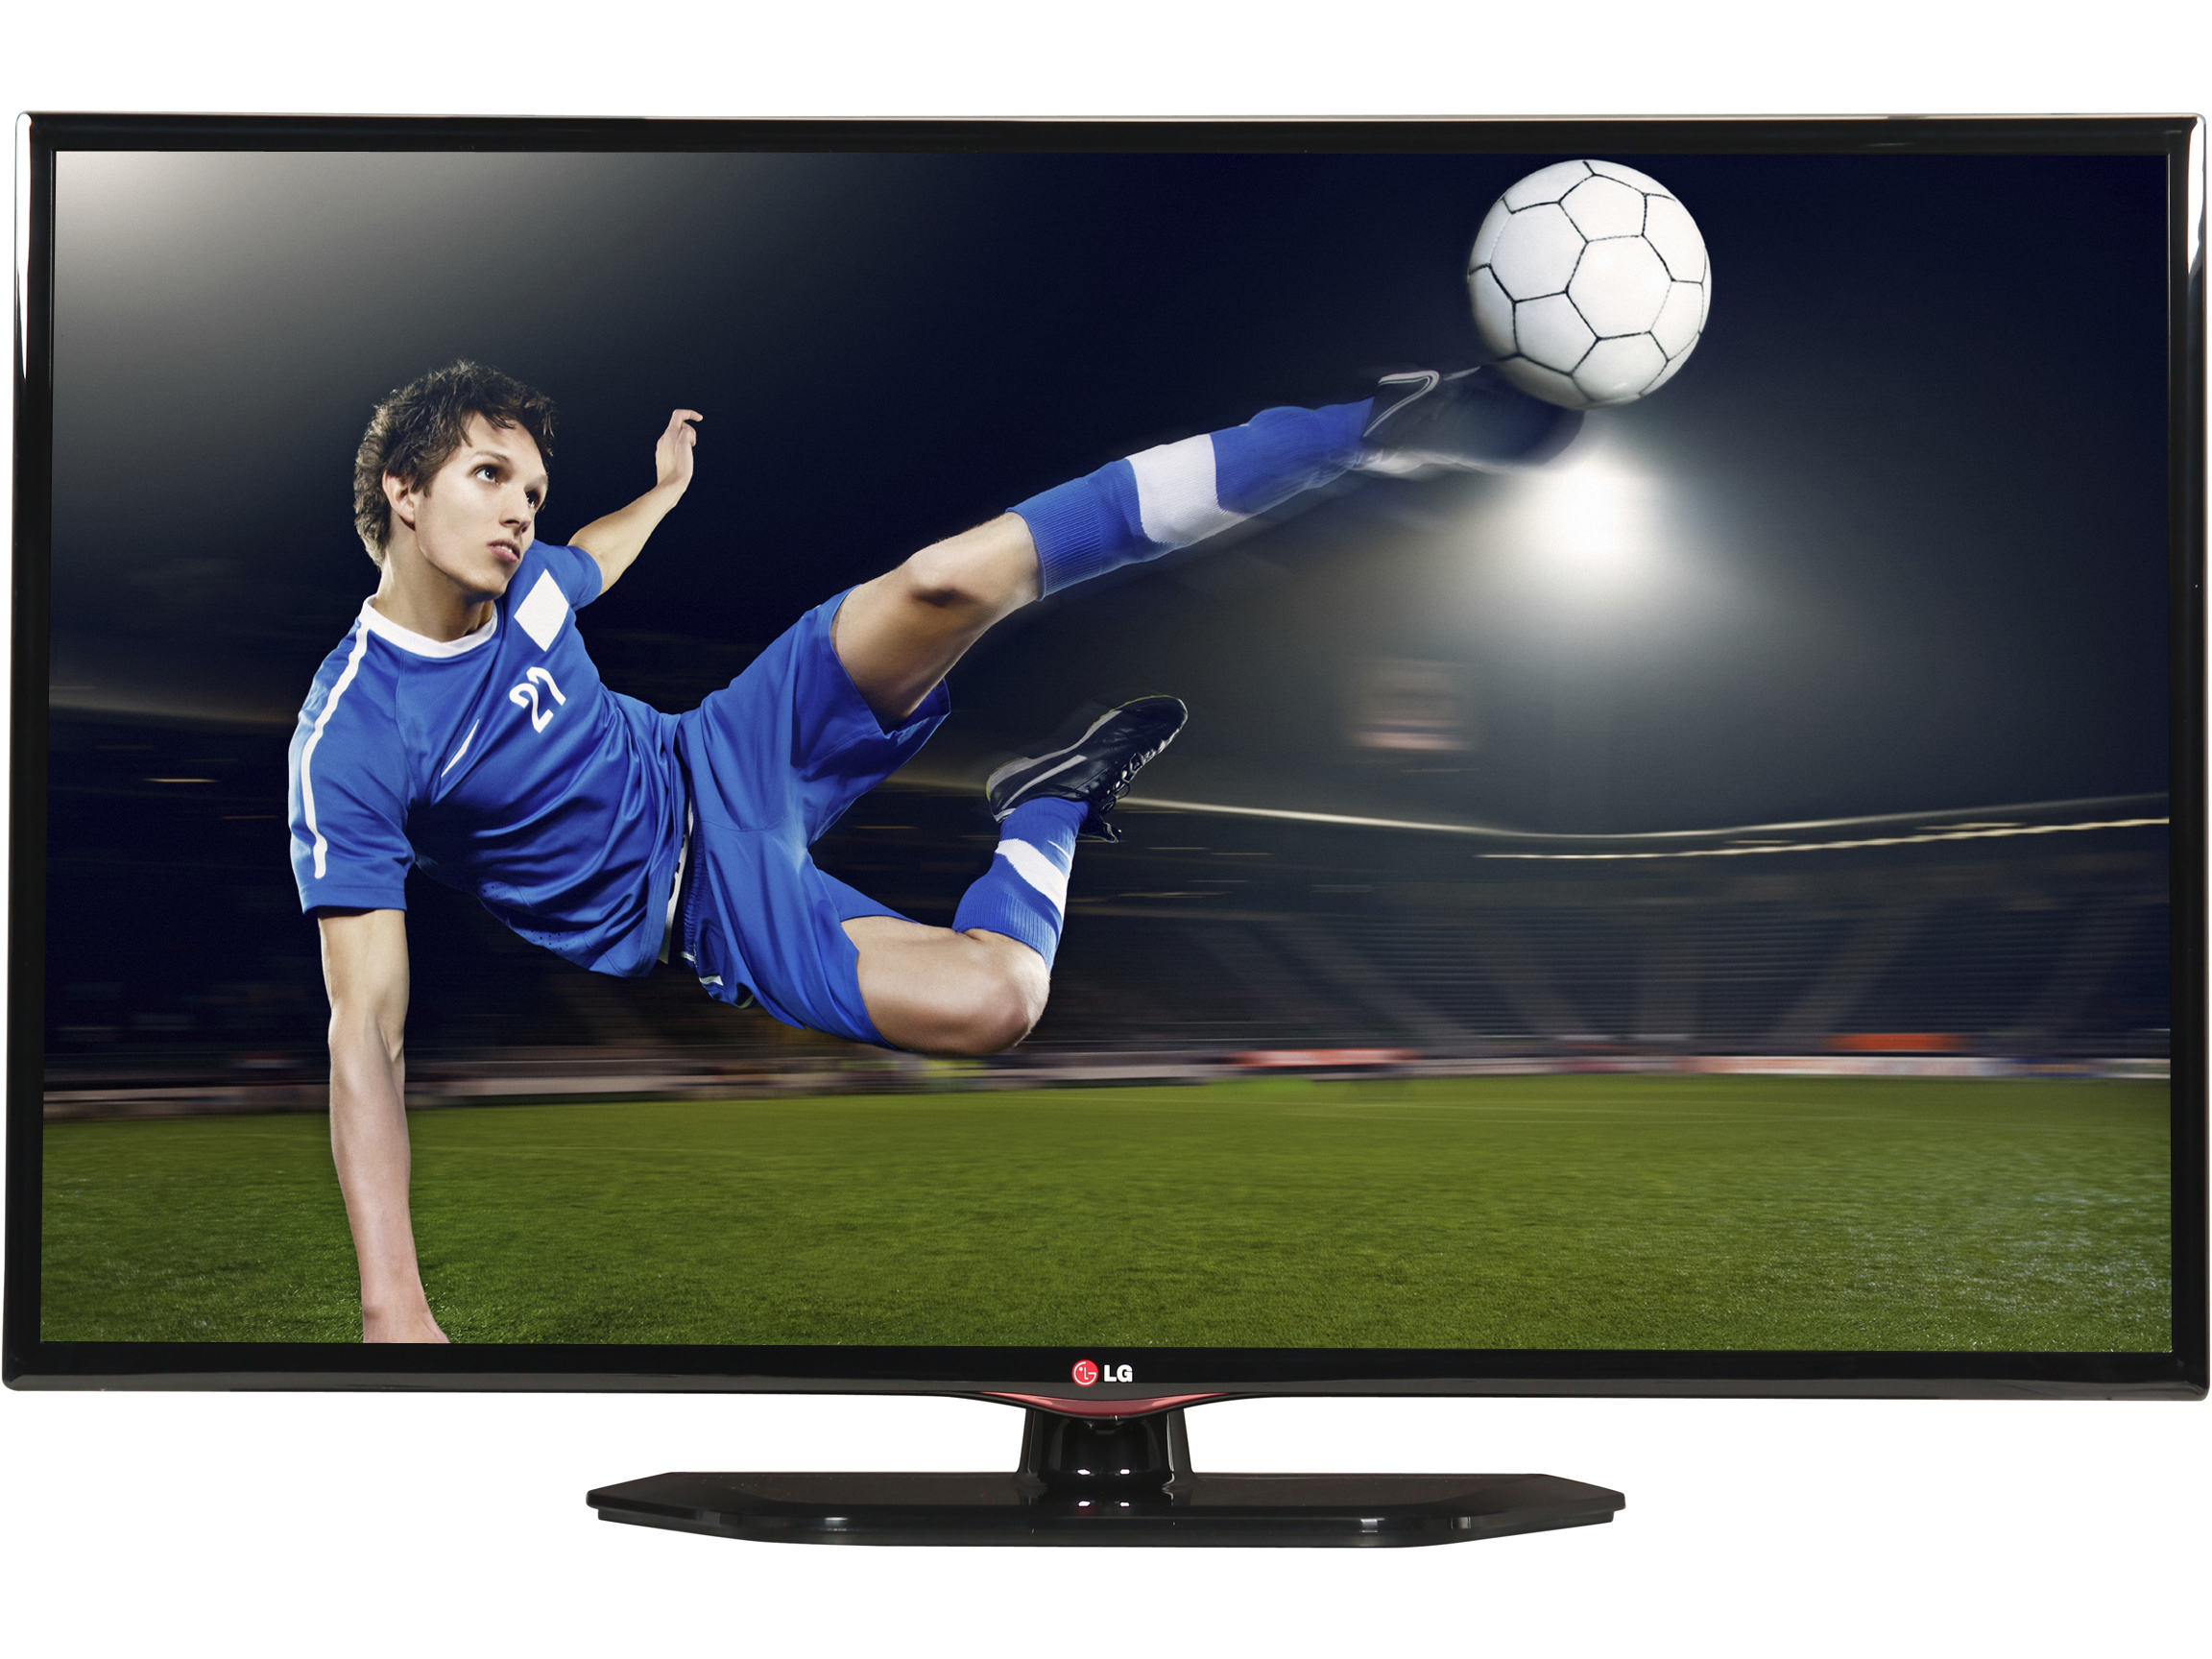 "Refurbished: LG 42LN5300 42"" (41.9"" Diagonal) 1080p 60Hz LED TV"